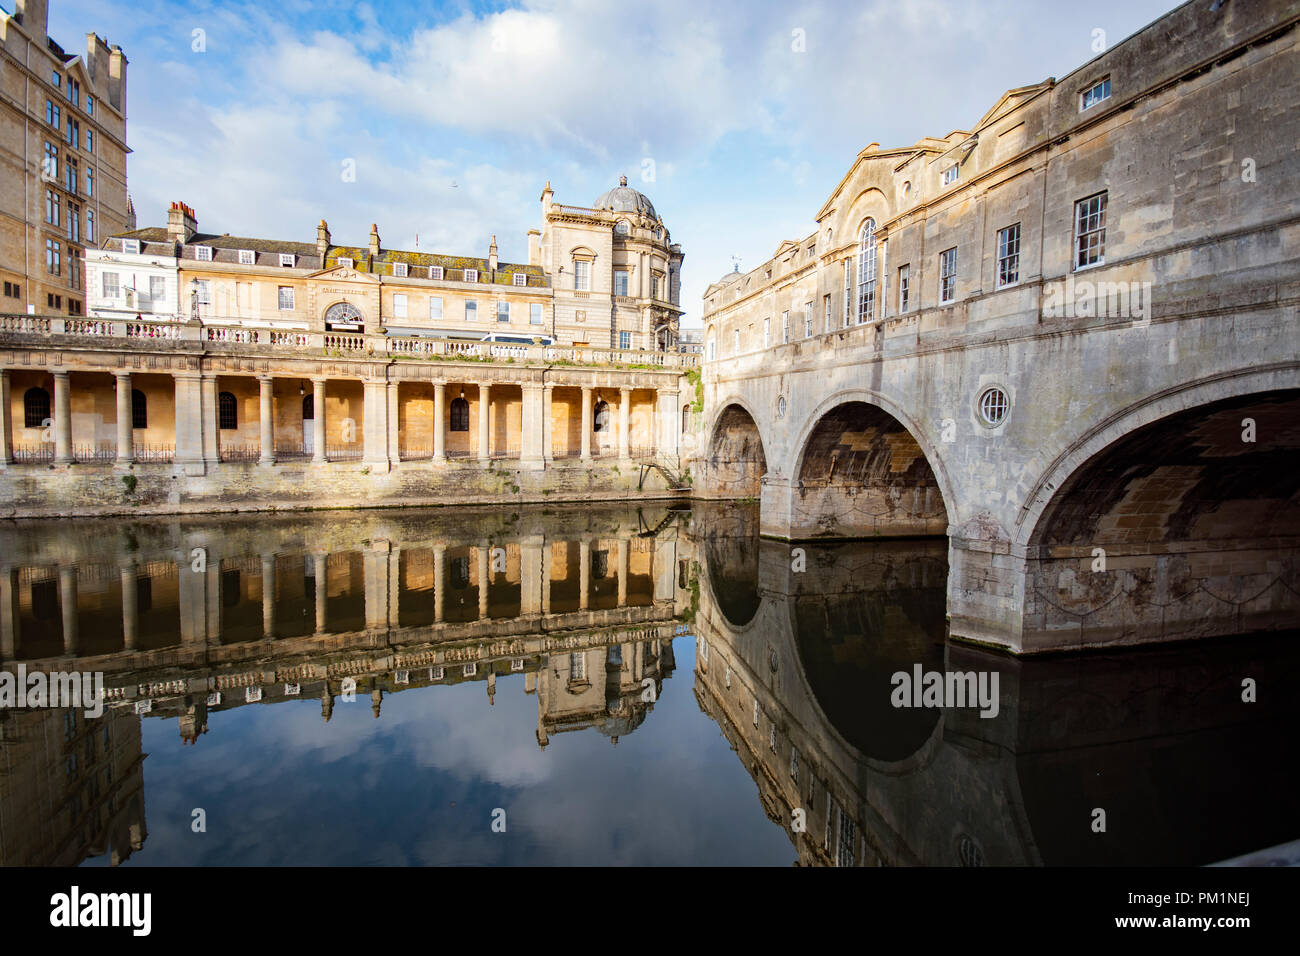 Views of Pultney Bridge in Bath, on a beautiful day with clear reflections in the water - Stock Image